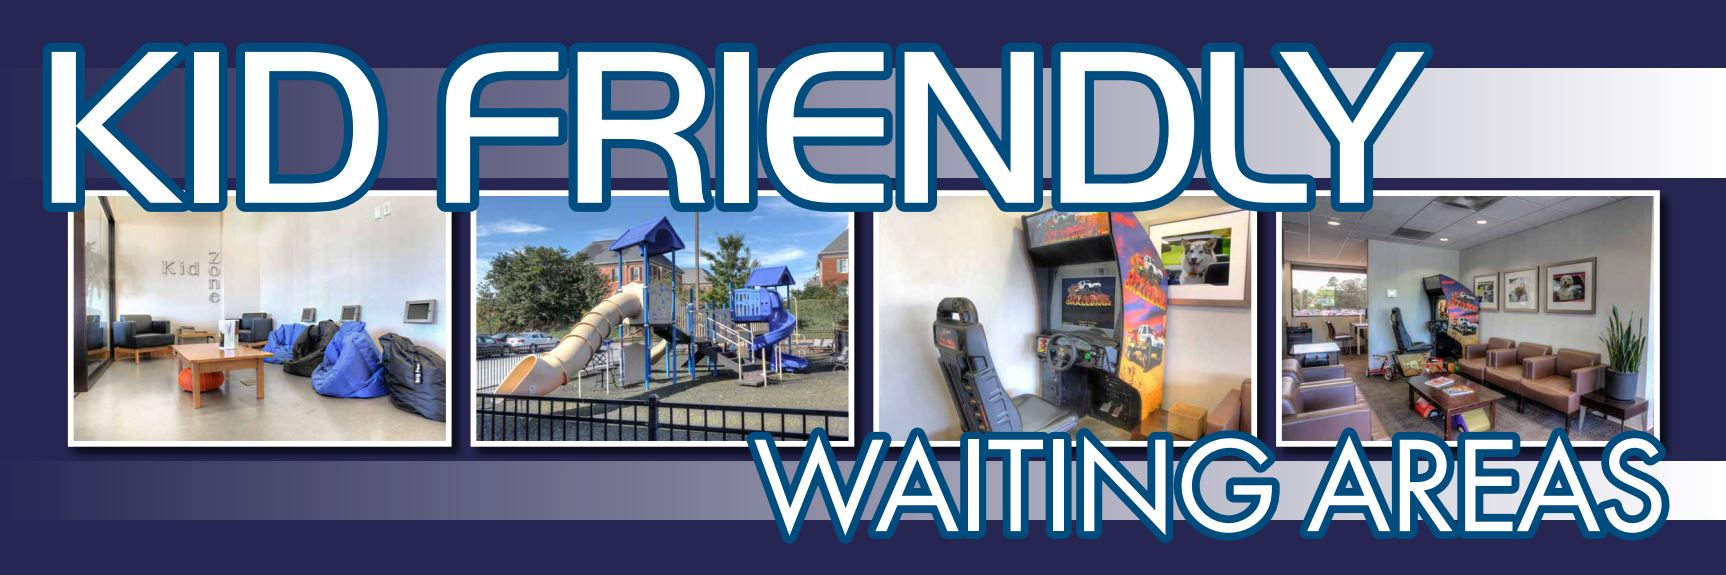 Kid Friendly Waiting Areas available to you